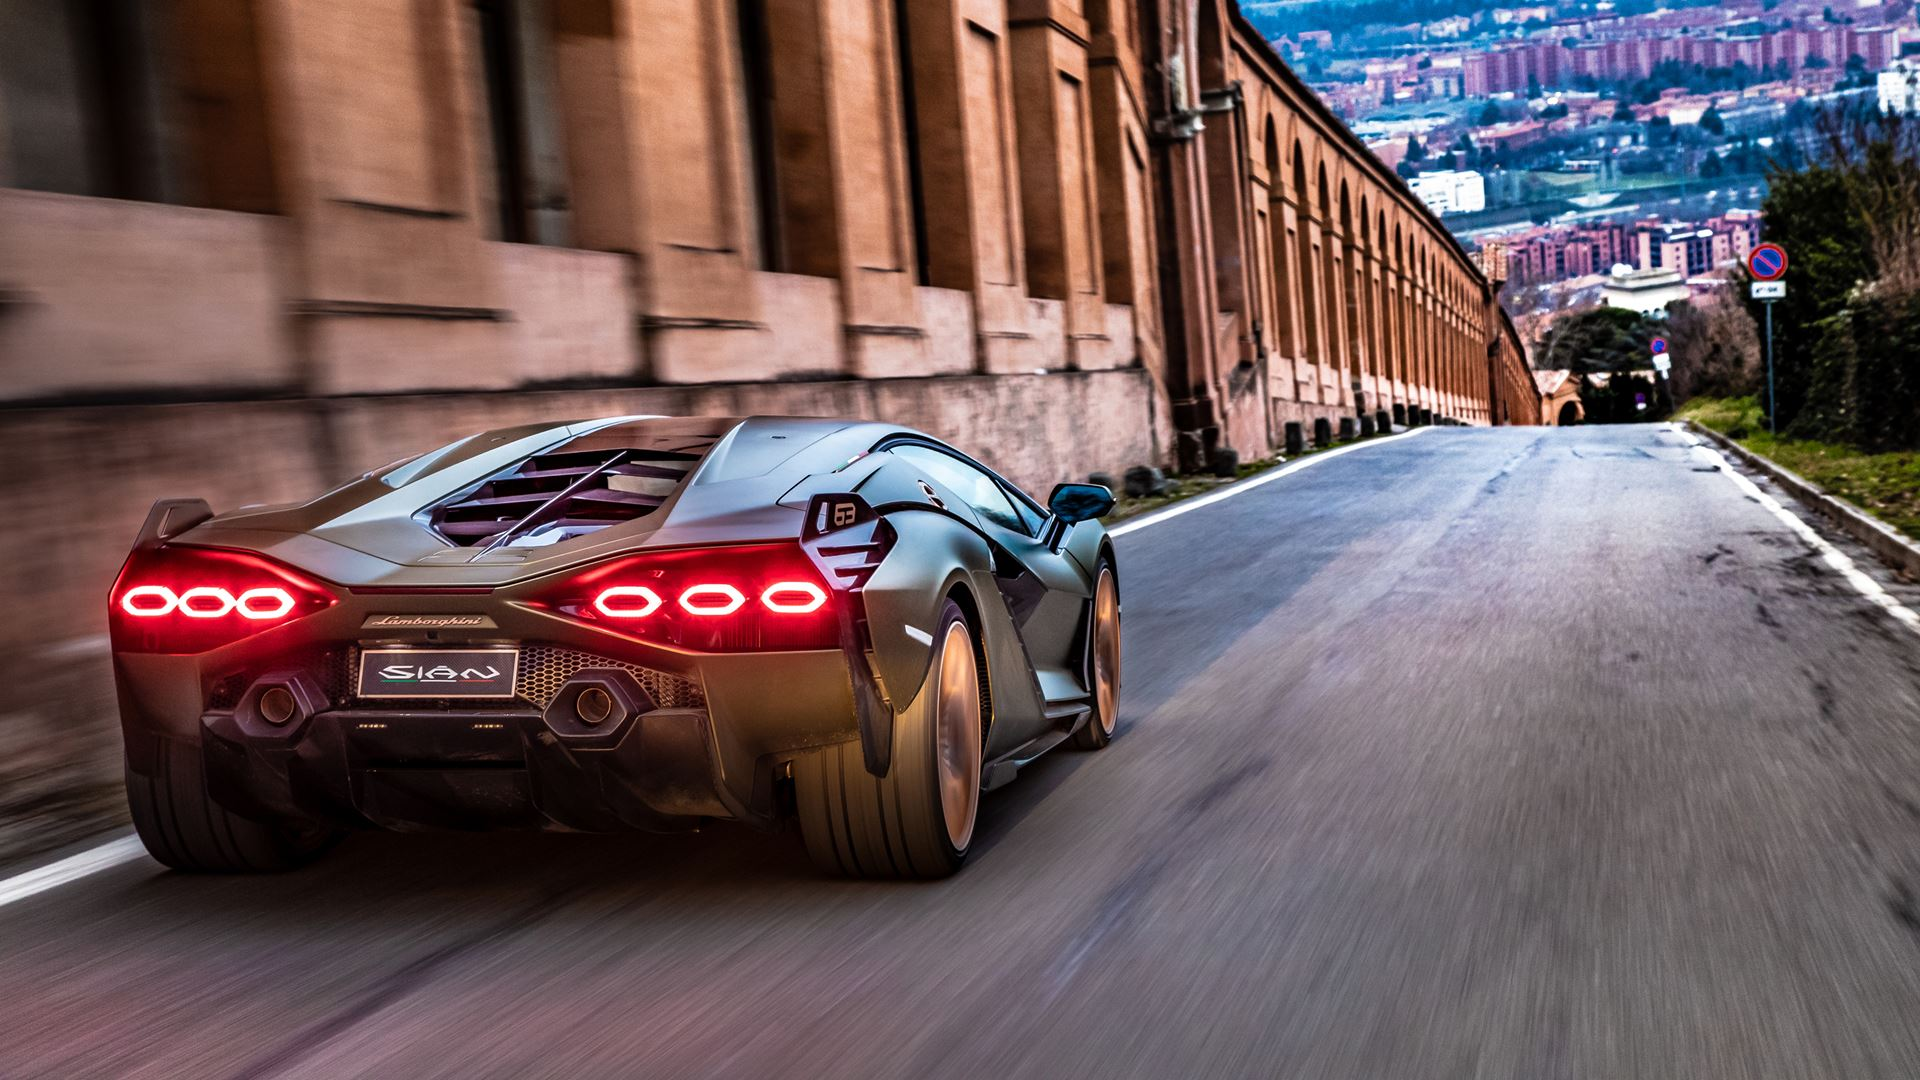 Lamborghini Sián pays homage to the porticoes of Bologna. Following the UNESCO designation, the super sports car from Sant'Agata travels the streets of Bologna's porticoes - Image 7